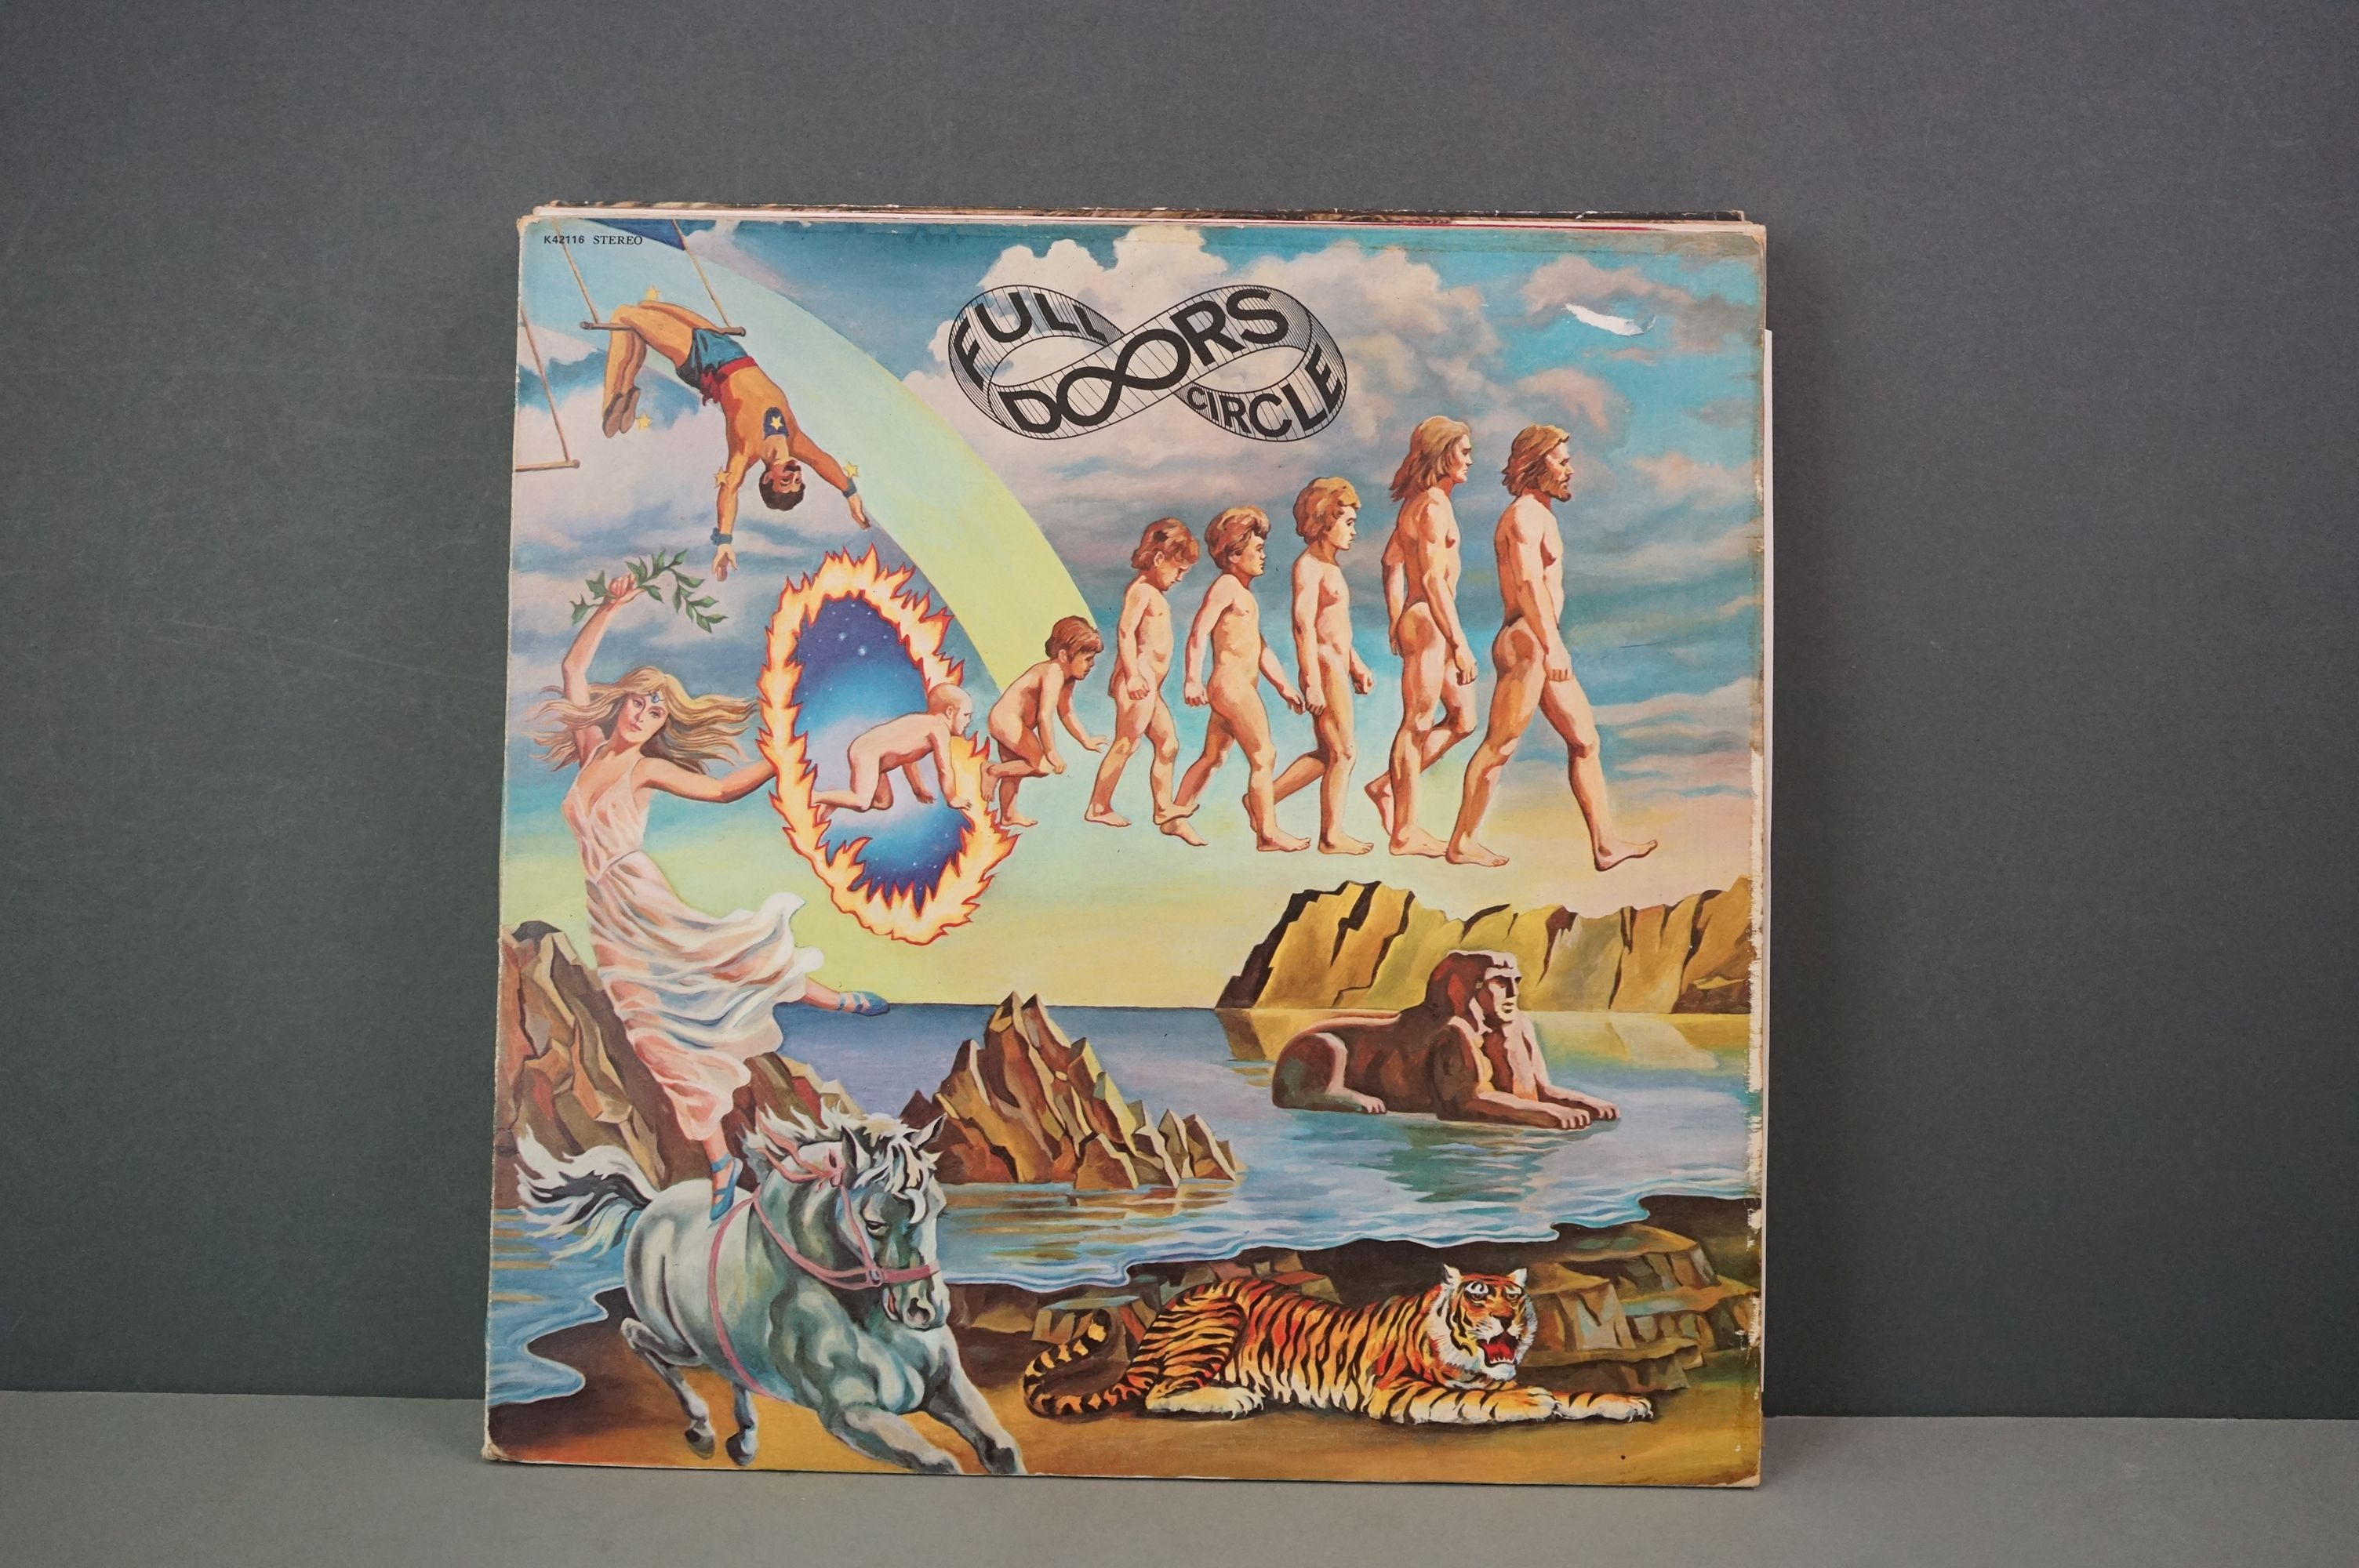 Vinyl - Sixteen The Doors vinyl LP's to include Waiting For The Sun (Elektra Records EKS 74024), The - Image 9 of 17